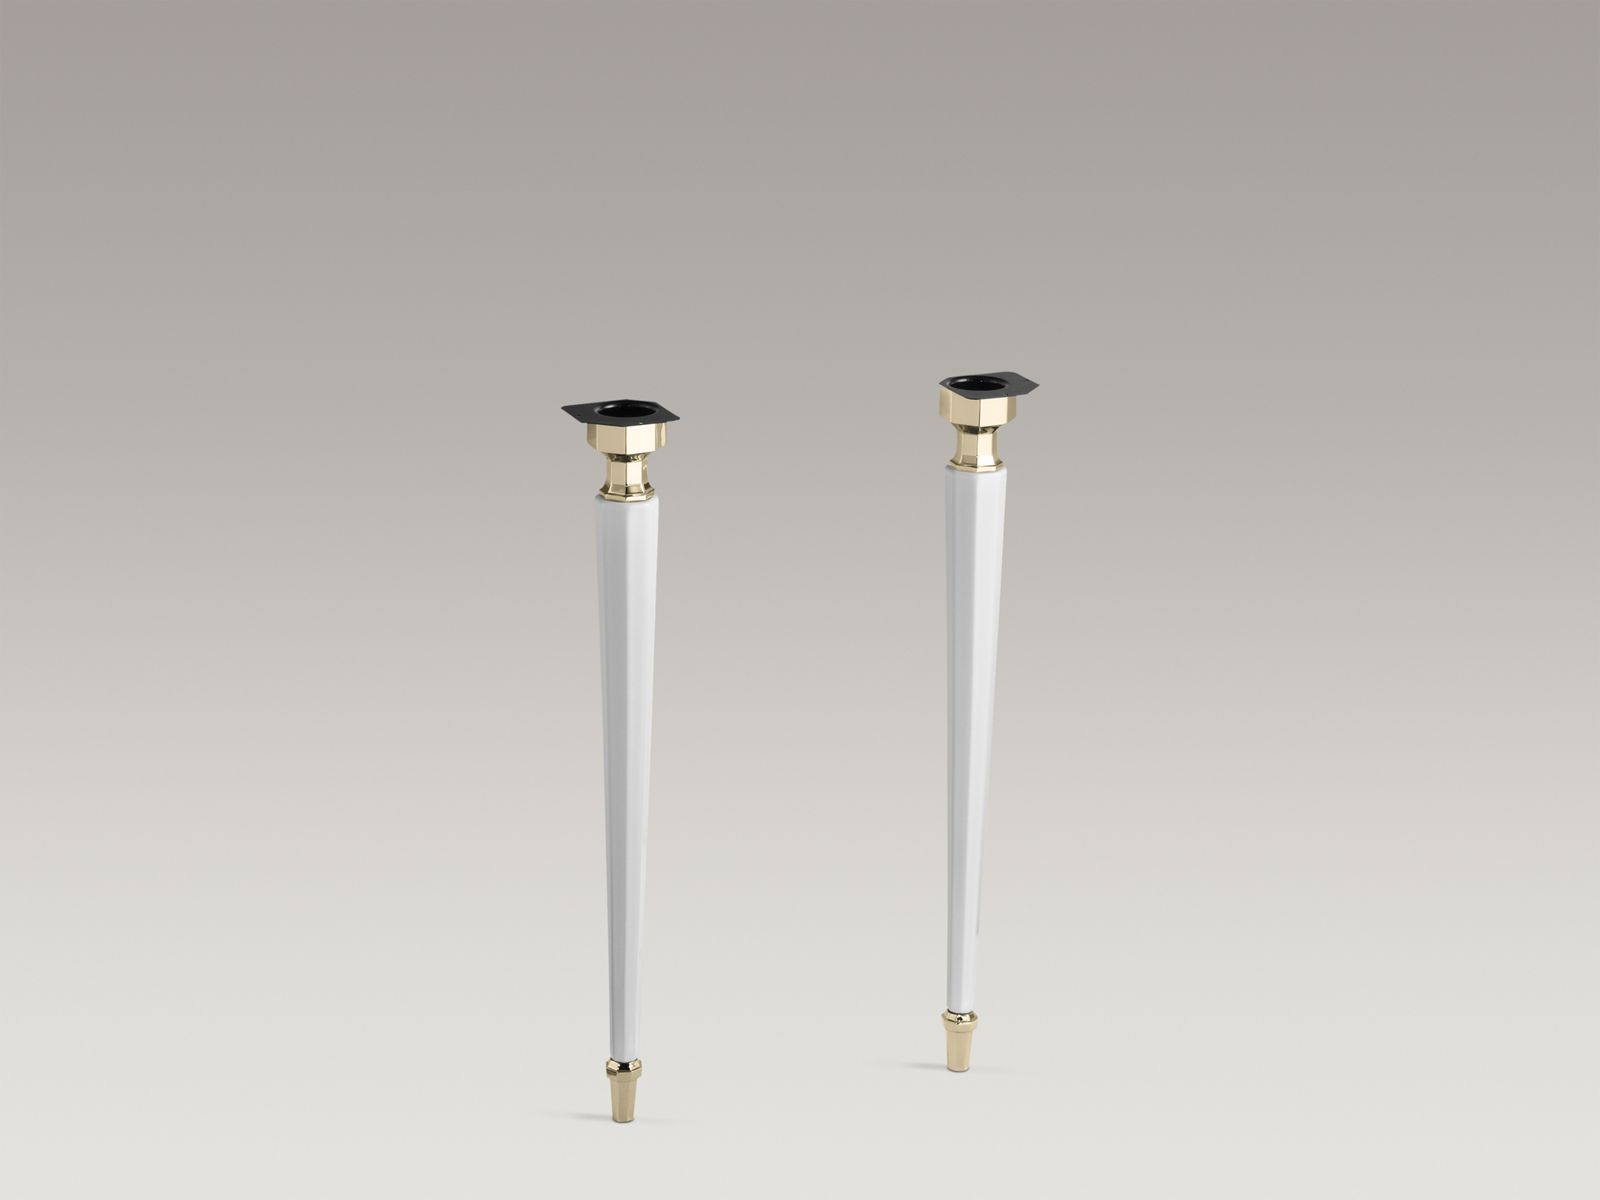 Kathryn® octagonal fireclay/French Gold tapered brass table legs